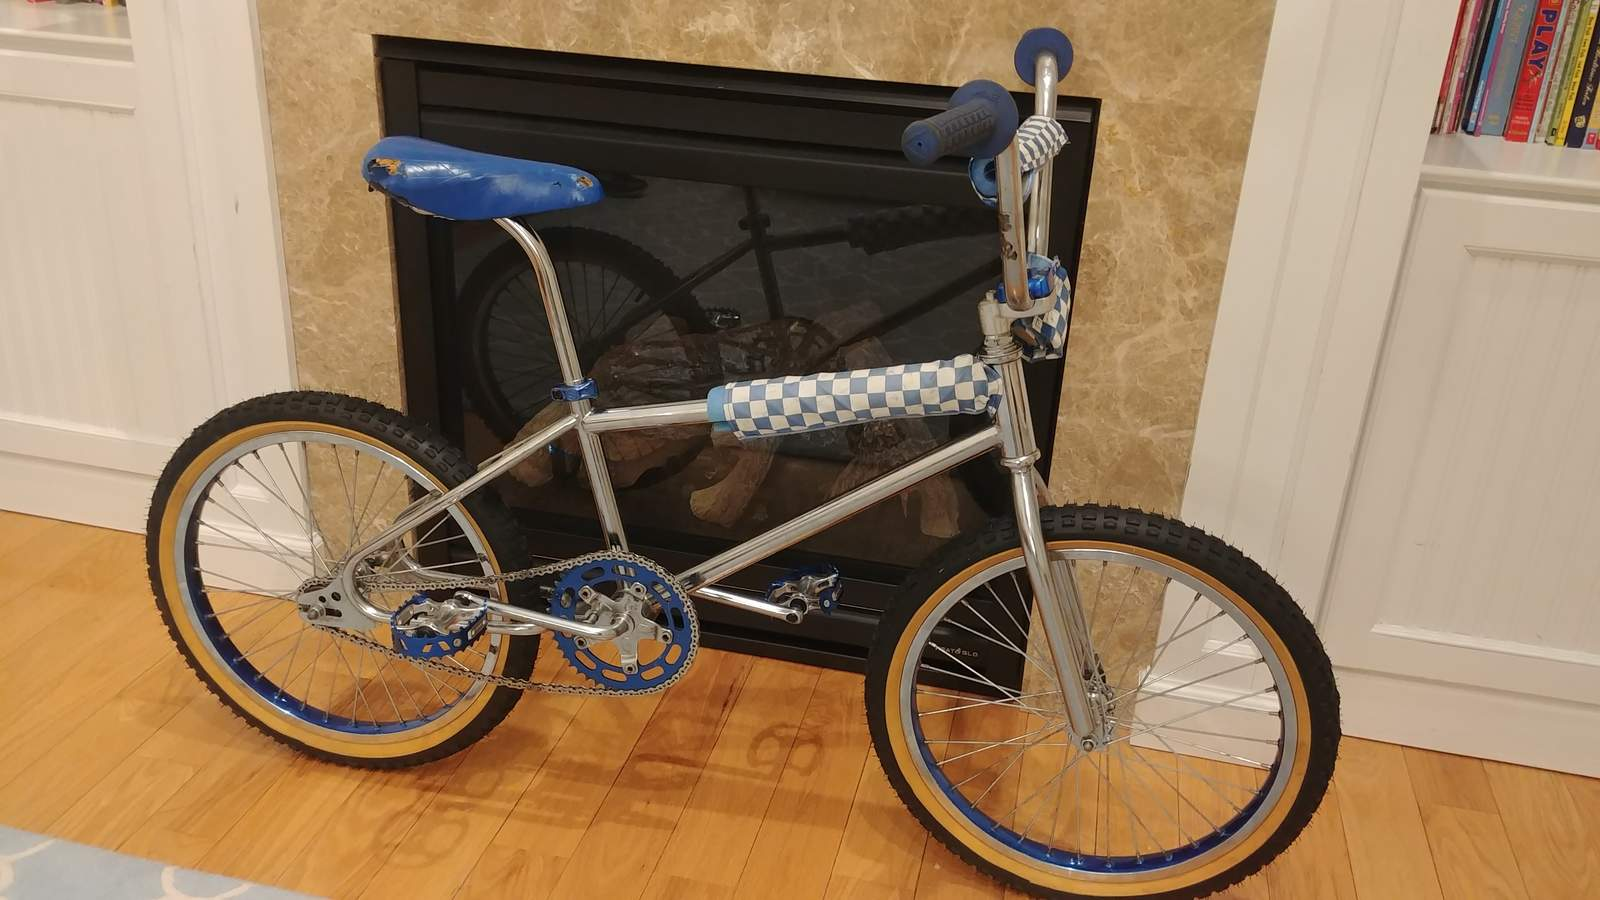 http://uploads.bmxmuseum.com/user-images/217008/01121819515a5960df66.jpg